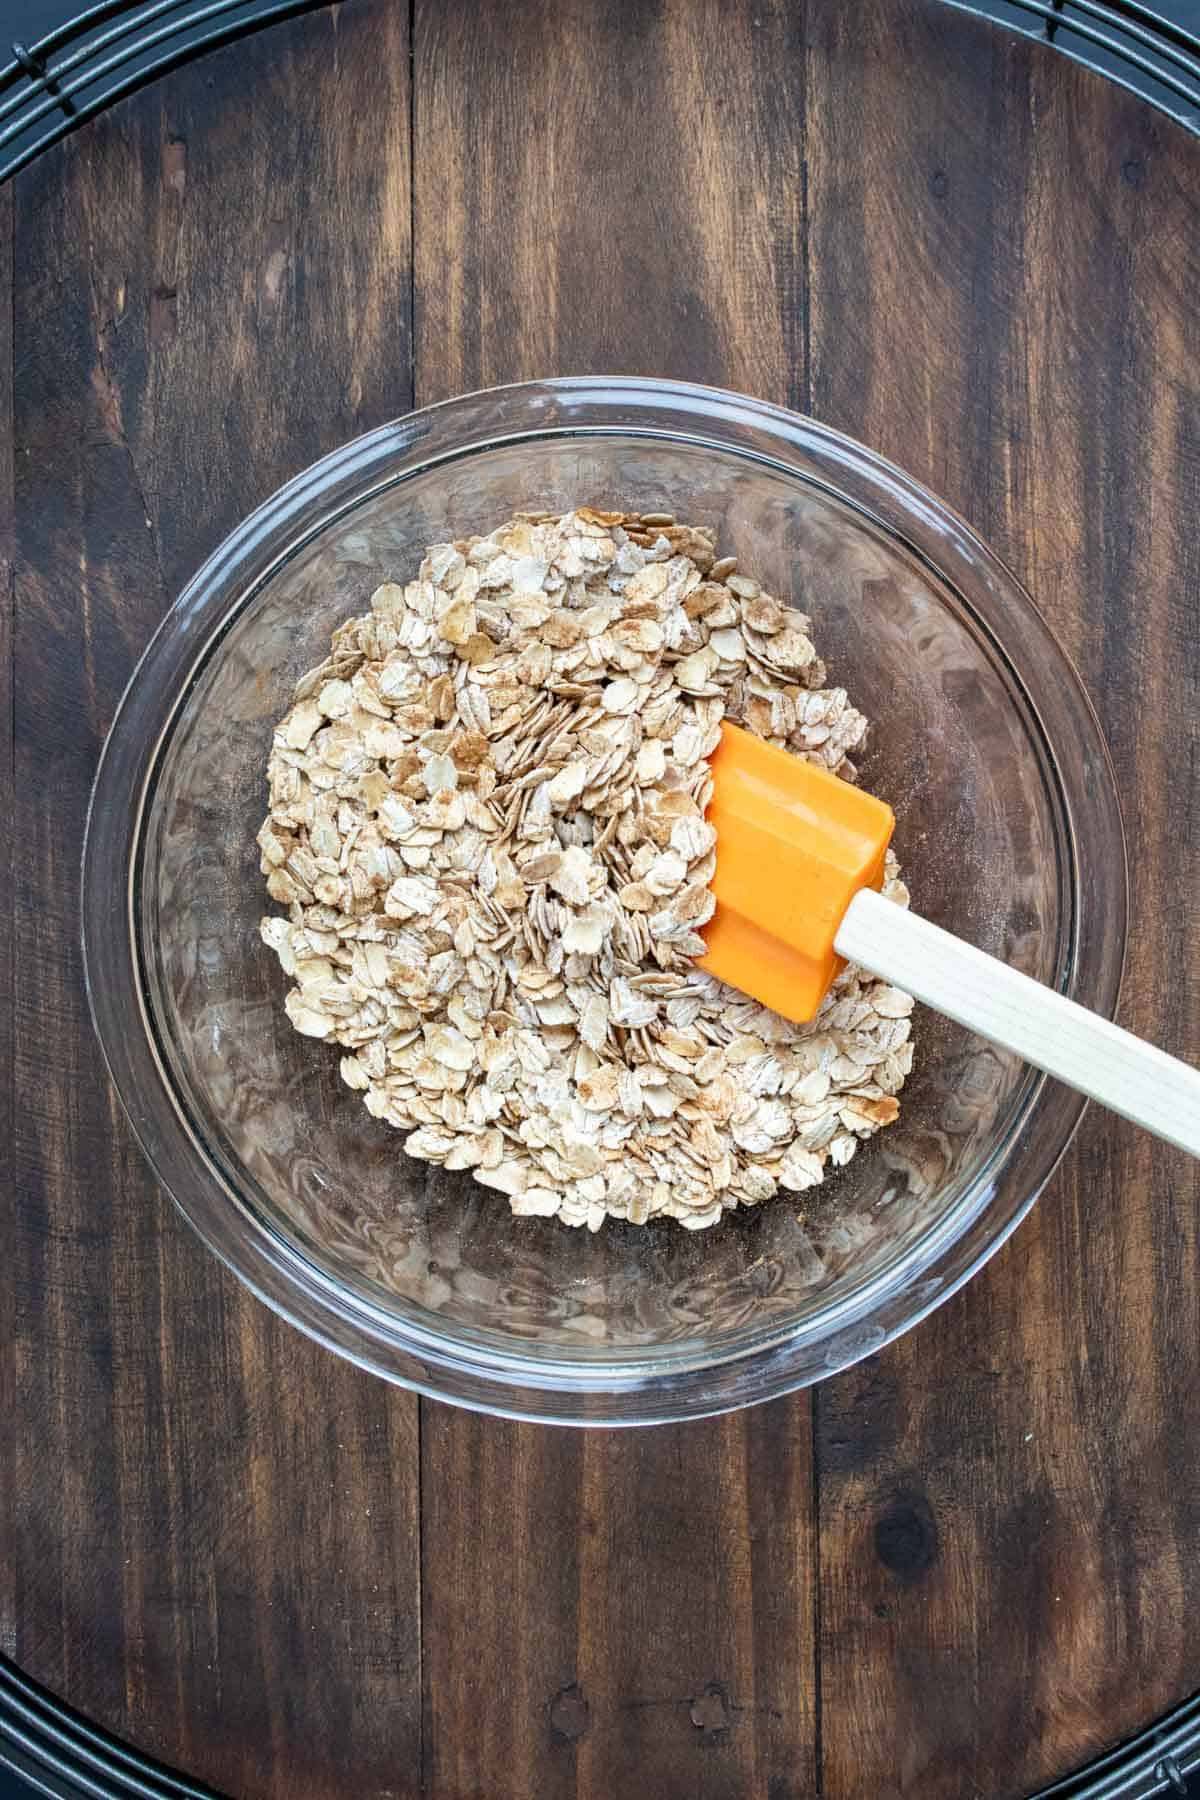 Glass bowl with oats being mixed with a orange spatula